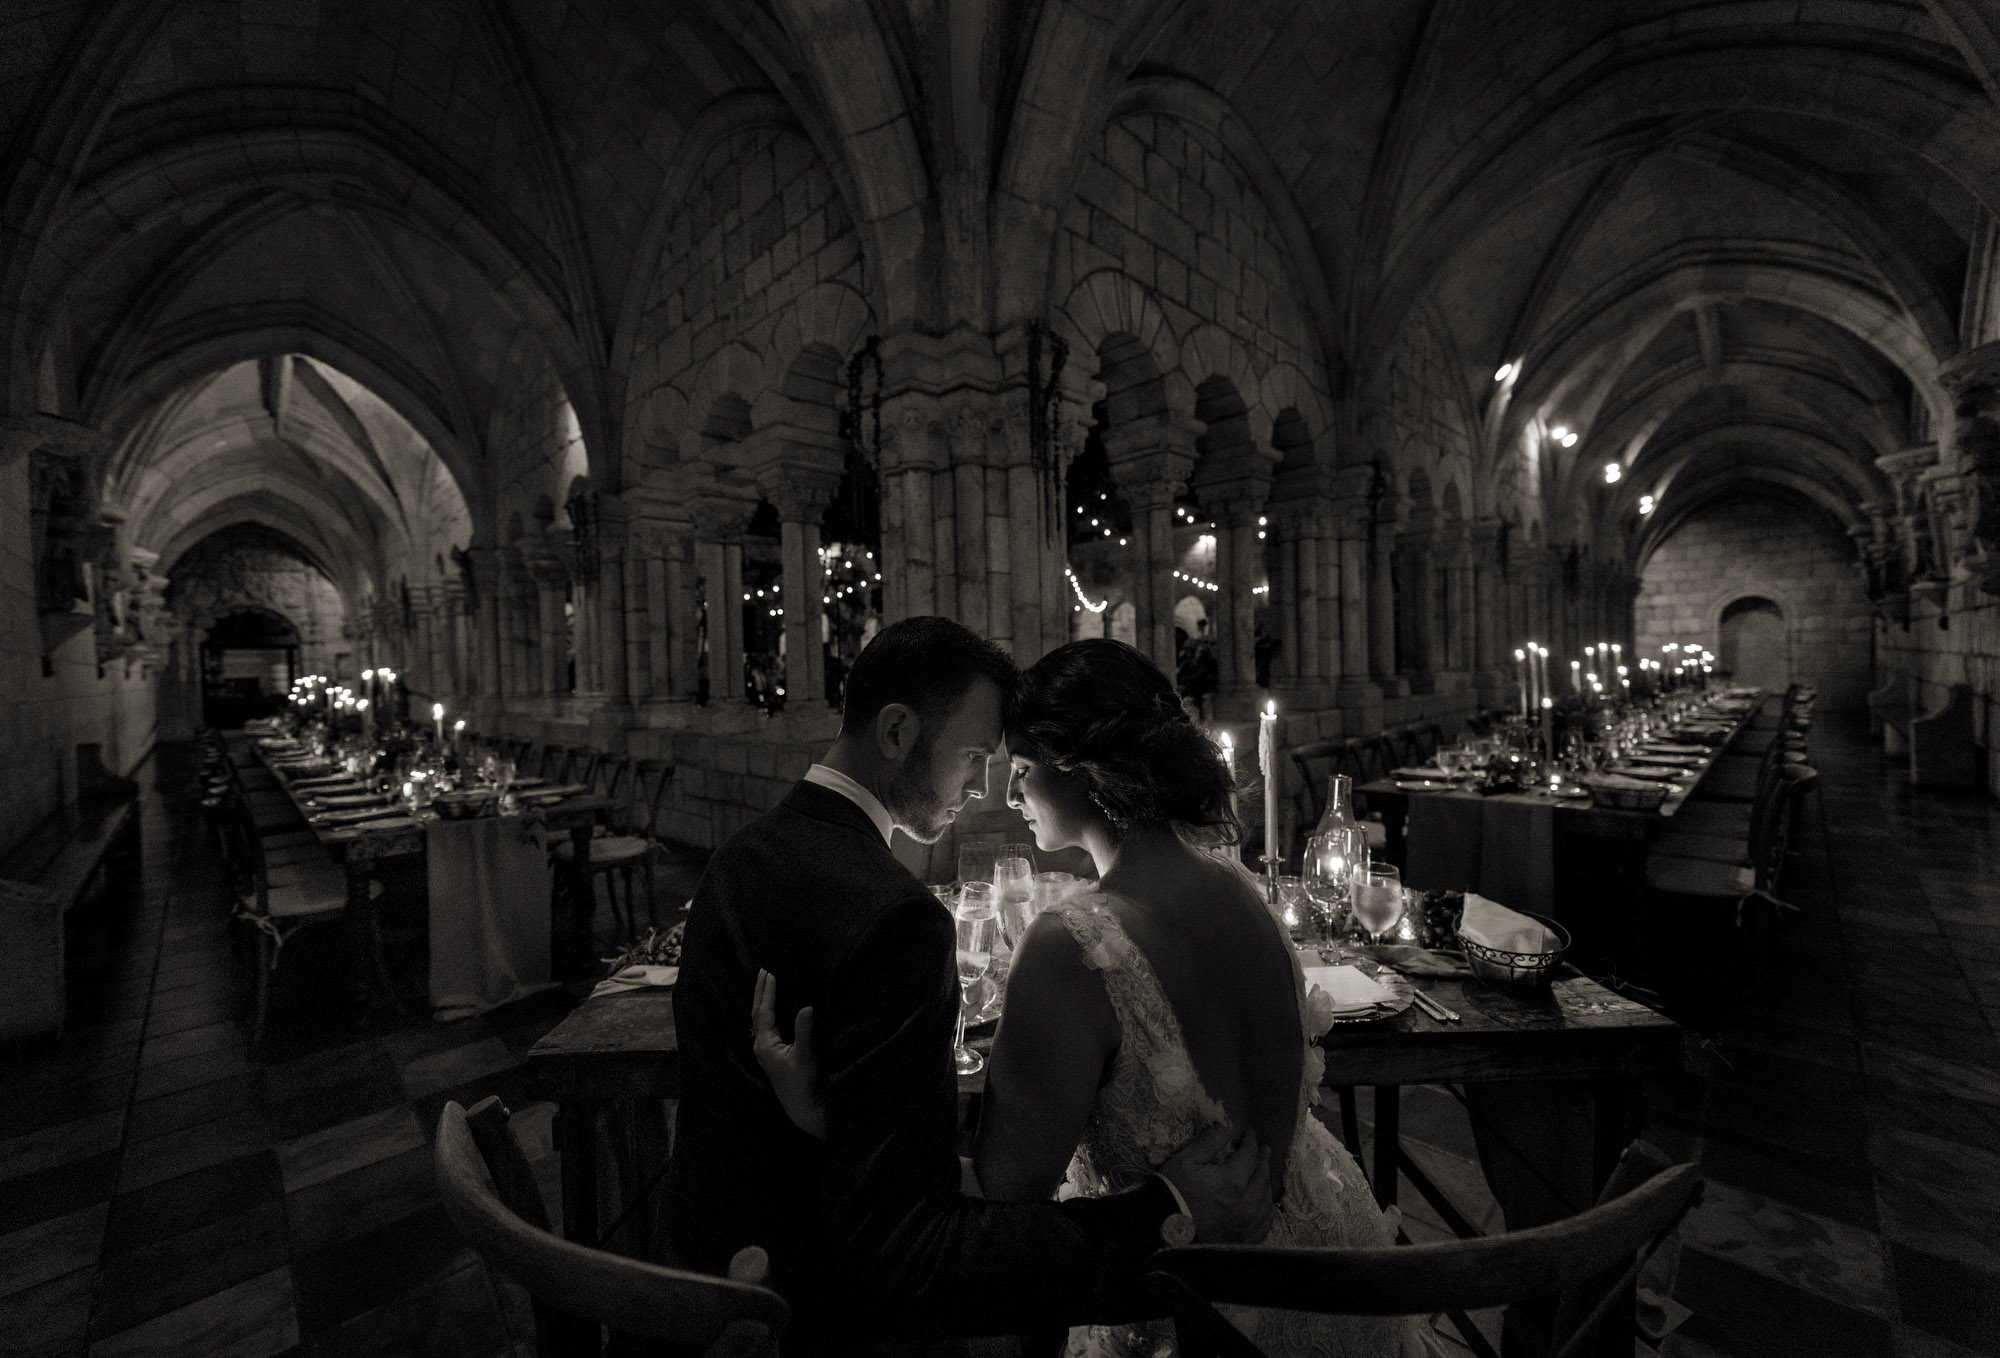 Bride and groom at head table in luxury venue - photo by Jerry Ghionis